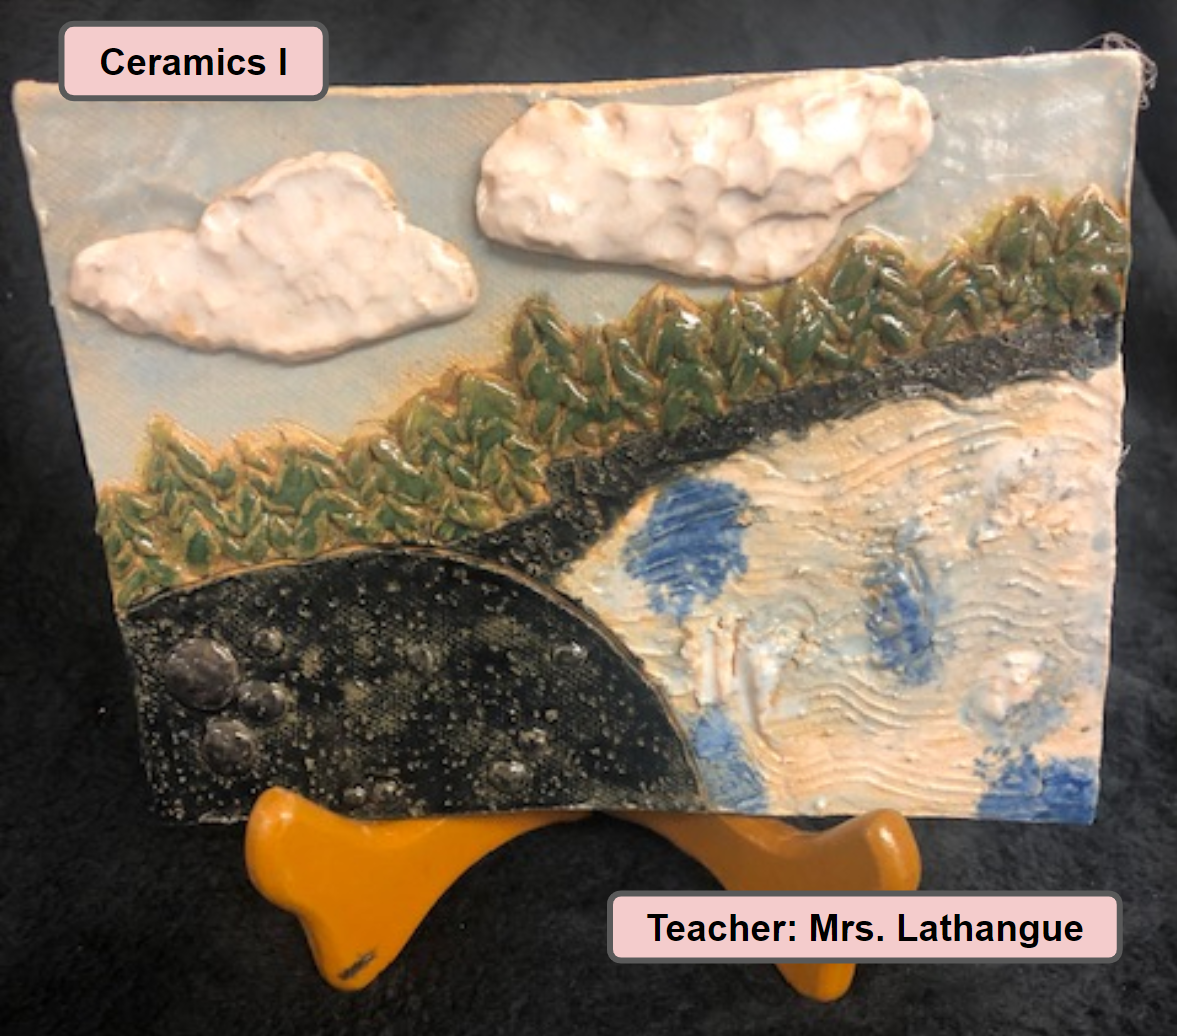 Ceramics One Art Class Project - Teacher Mrs. Lathangue - Landscape